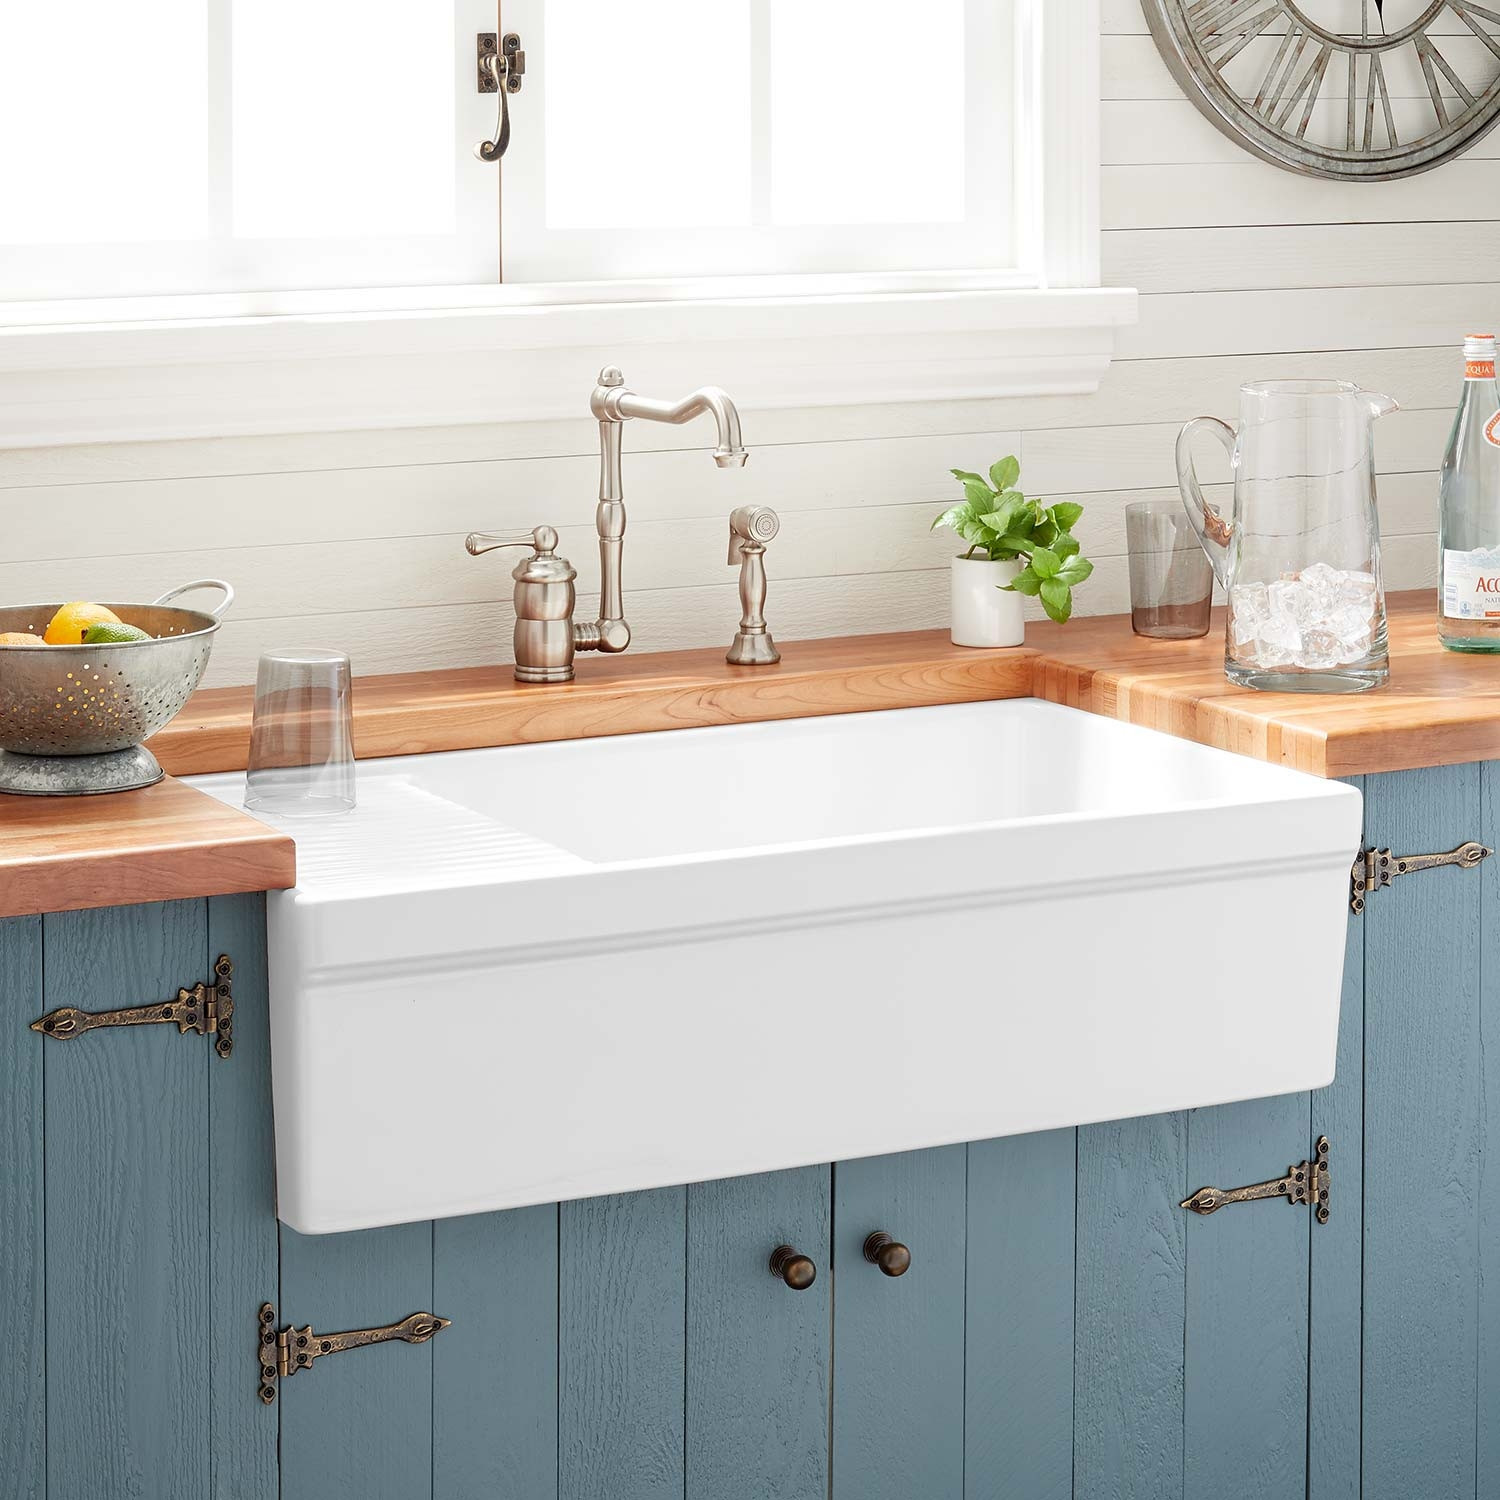 """Best ideas about Farmhouse Bathroom Sink . Save or Pin 36"""" Gallo Fireclay Farmhouse Sink with Drainboard White Now."""